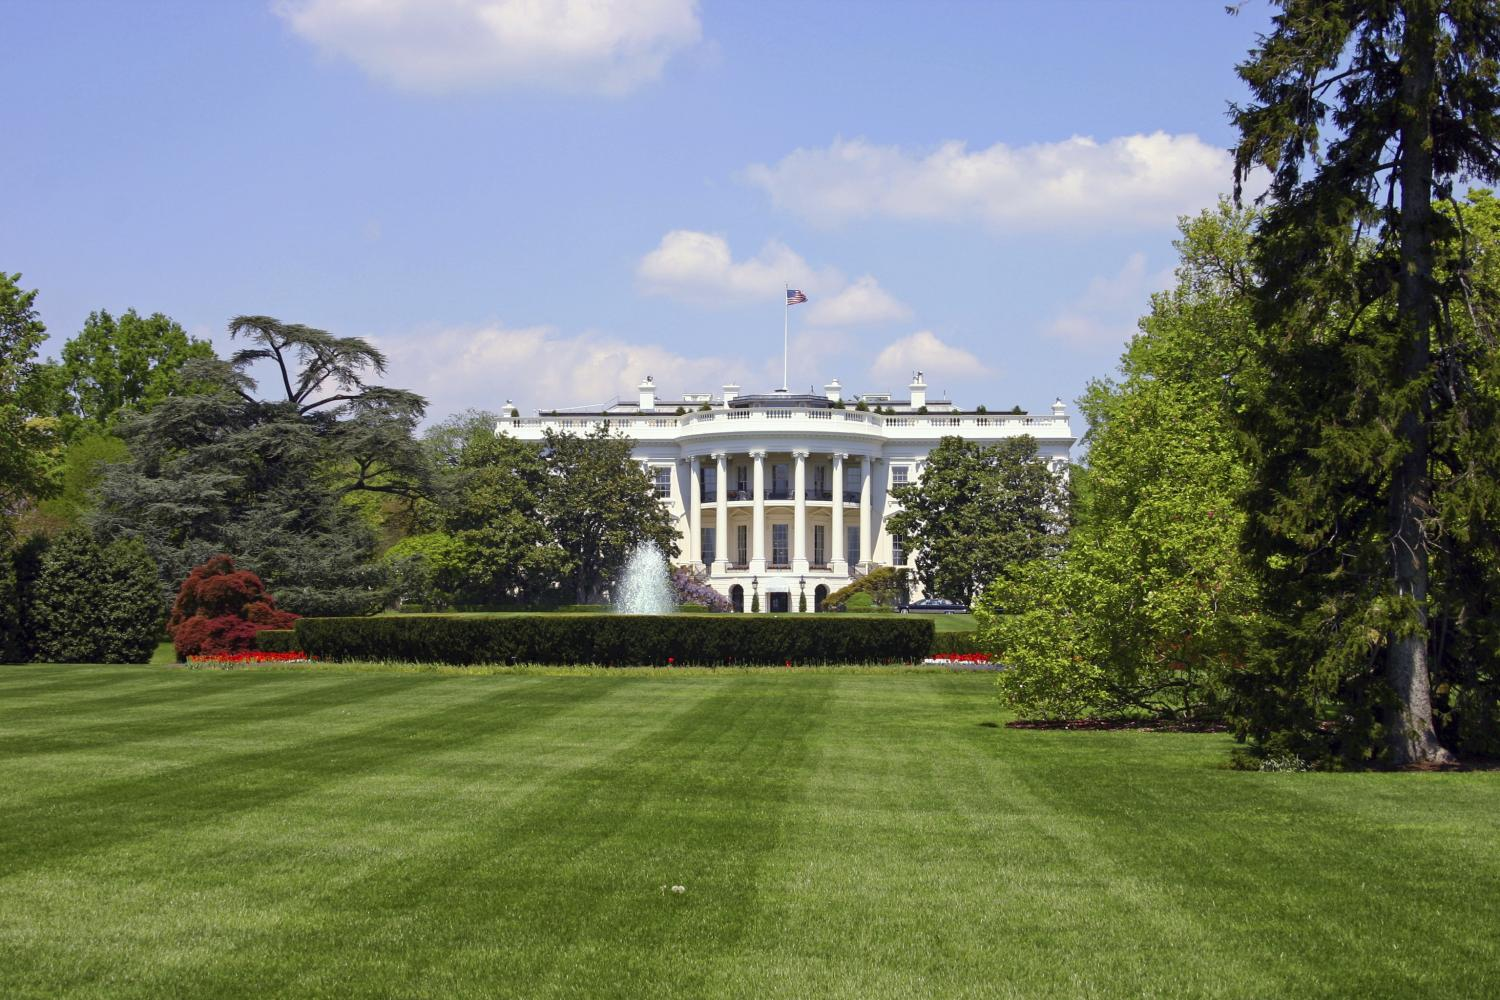 Two Day Grand Tour with Arlington National Cemetery, Mount Vernon and Old Town Alexandria